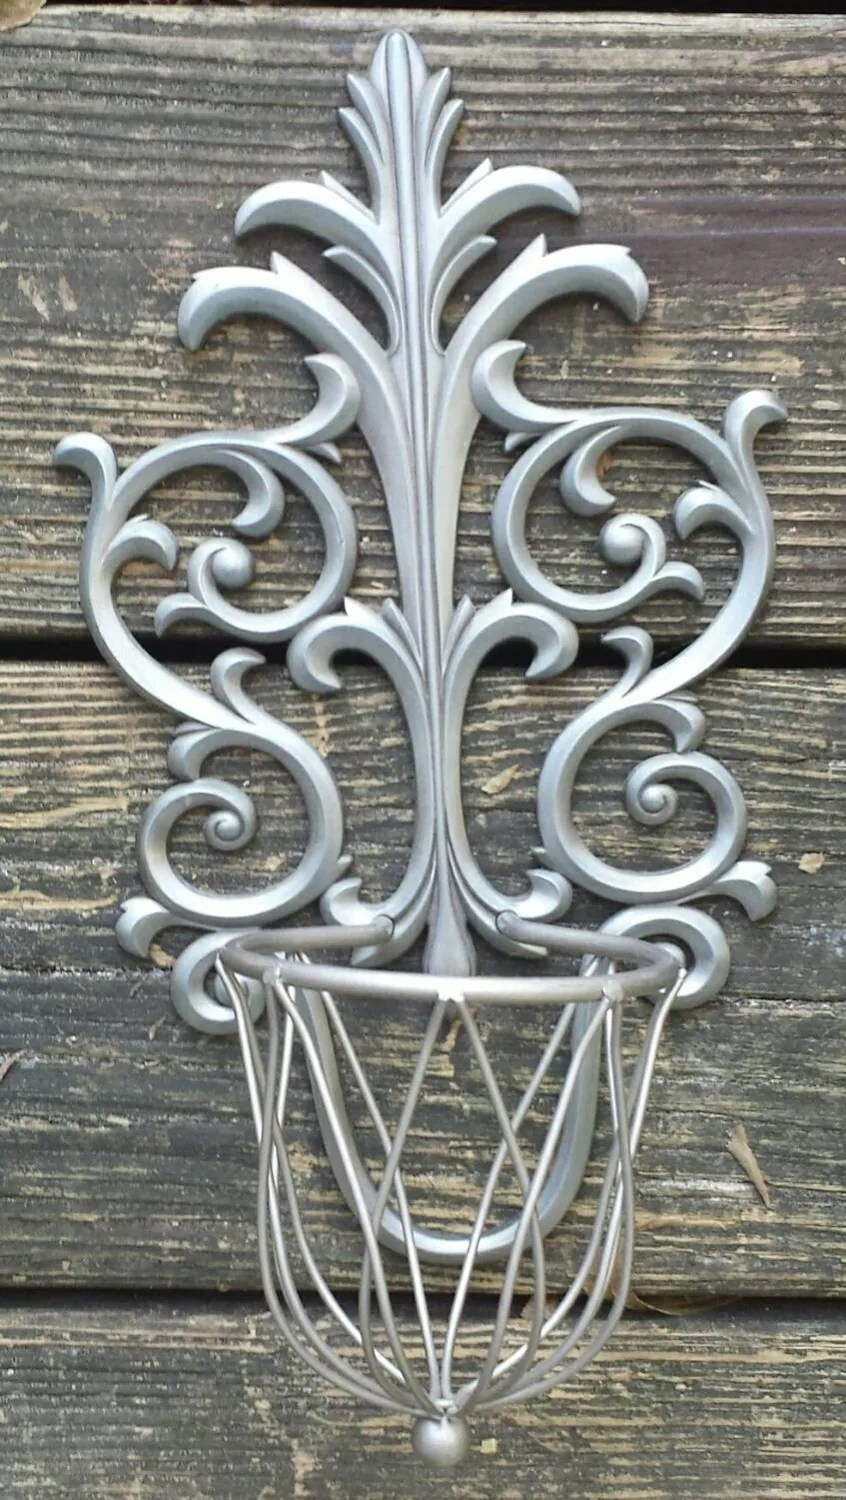 Wall Sconce Silver Candle Holder Decor on Silver Wall Sconces For Candles id=91422